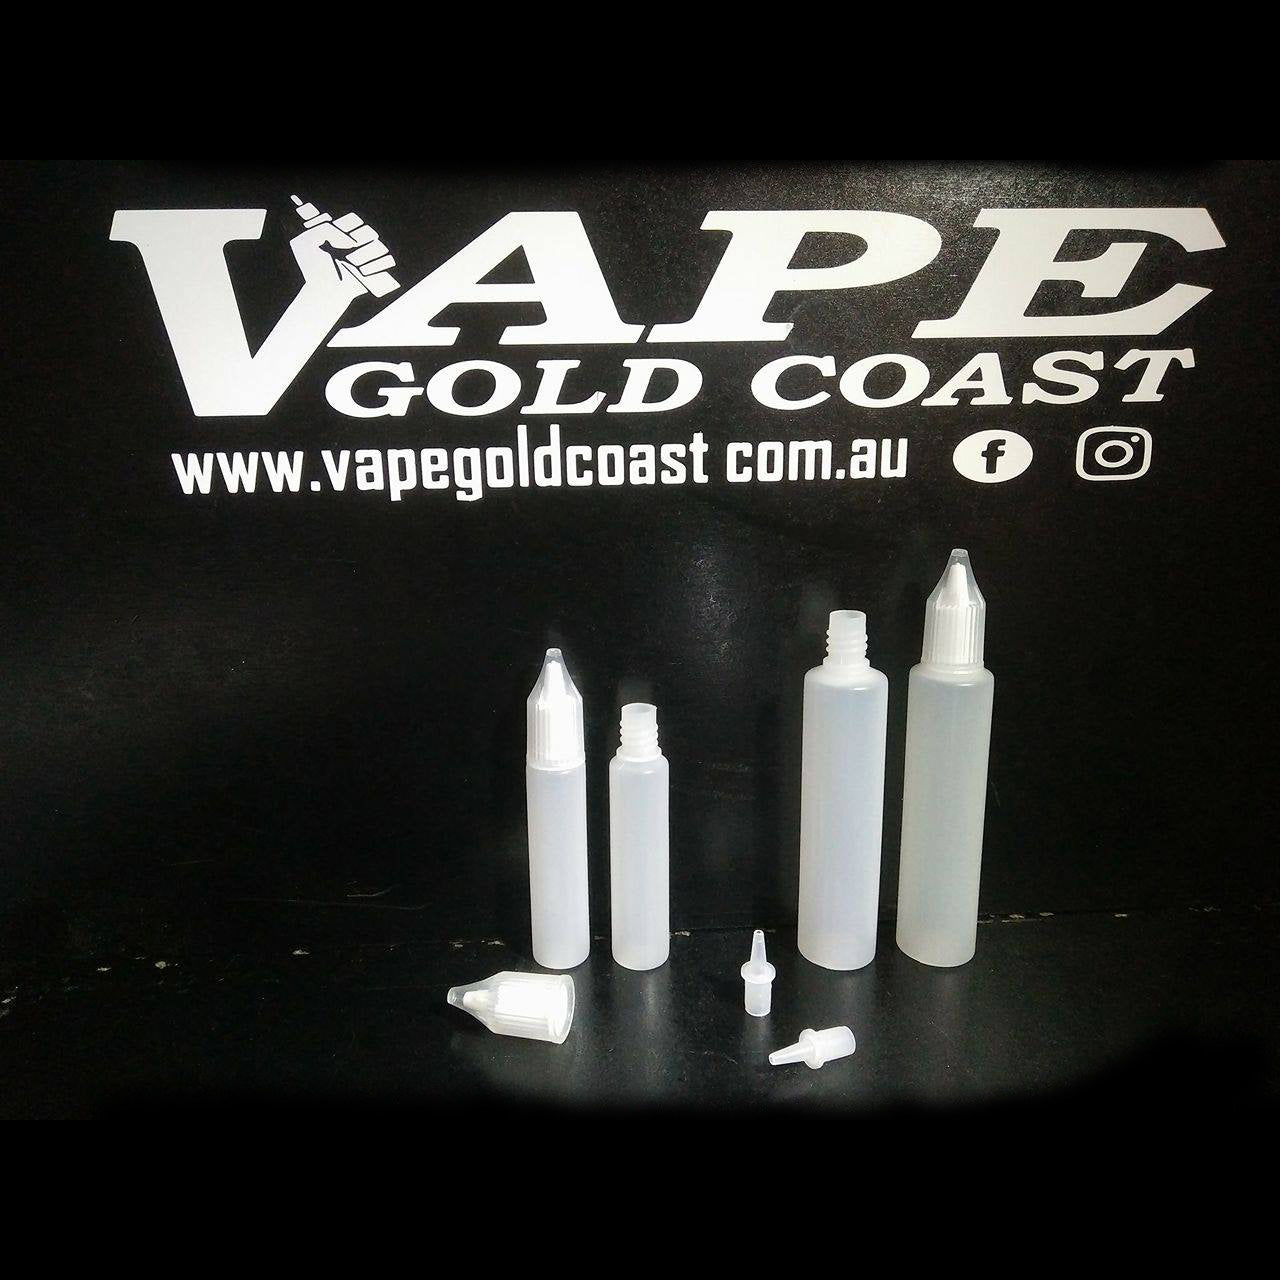 Assorted Unicorn Bottles - Vape Gold Coast